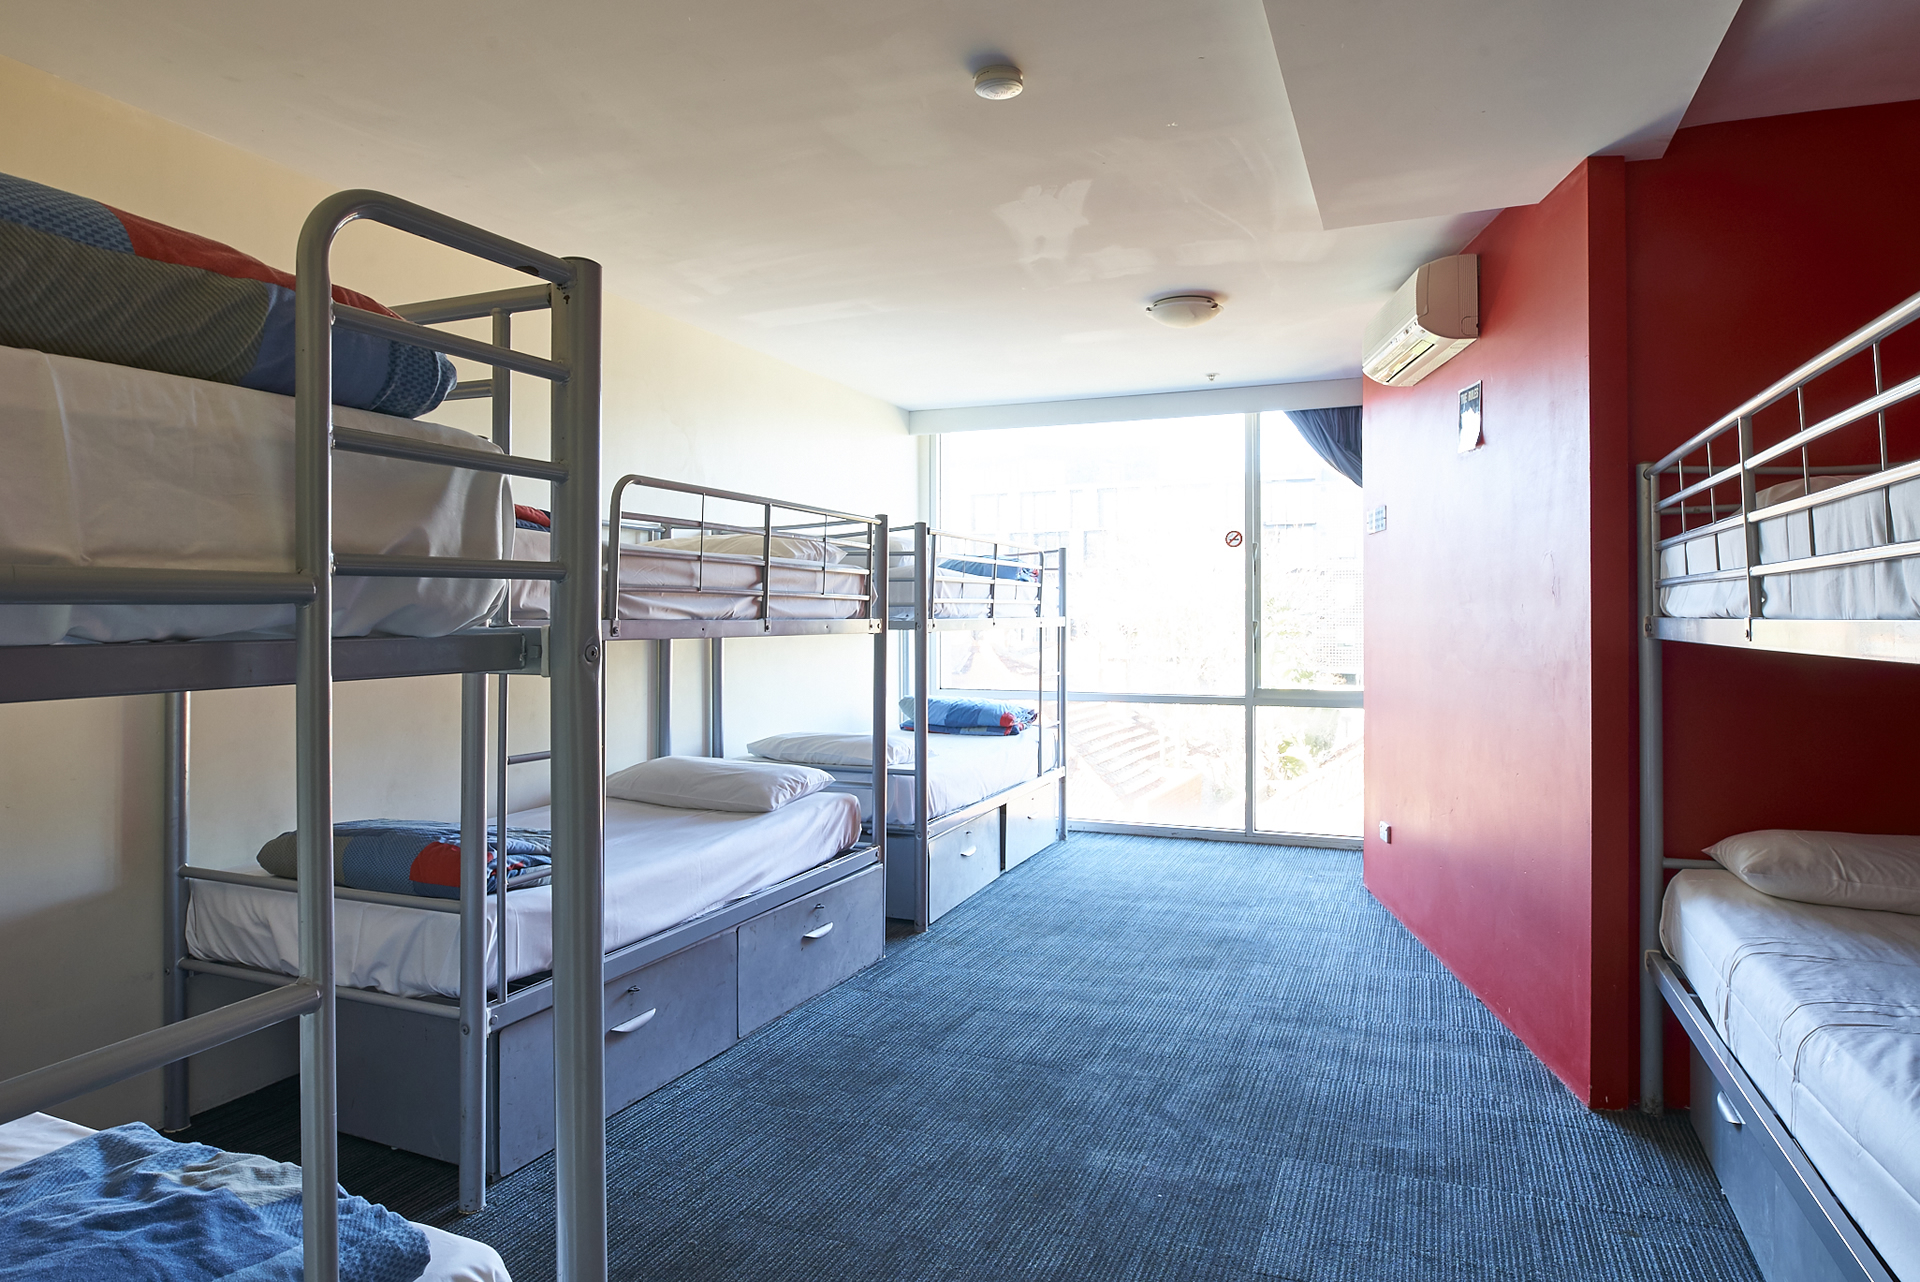 HOSTEL - Base St Kilda